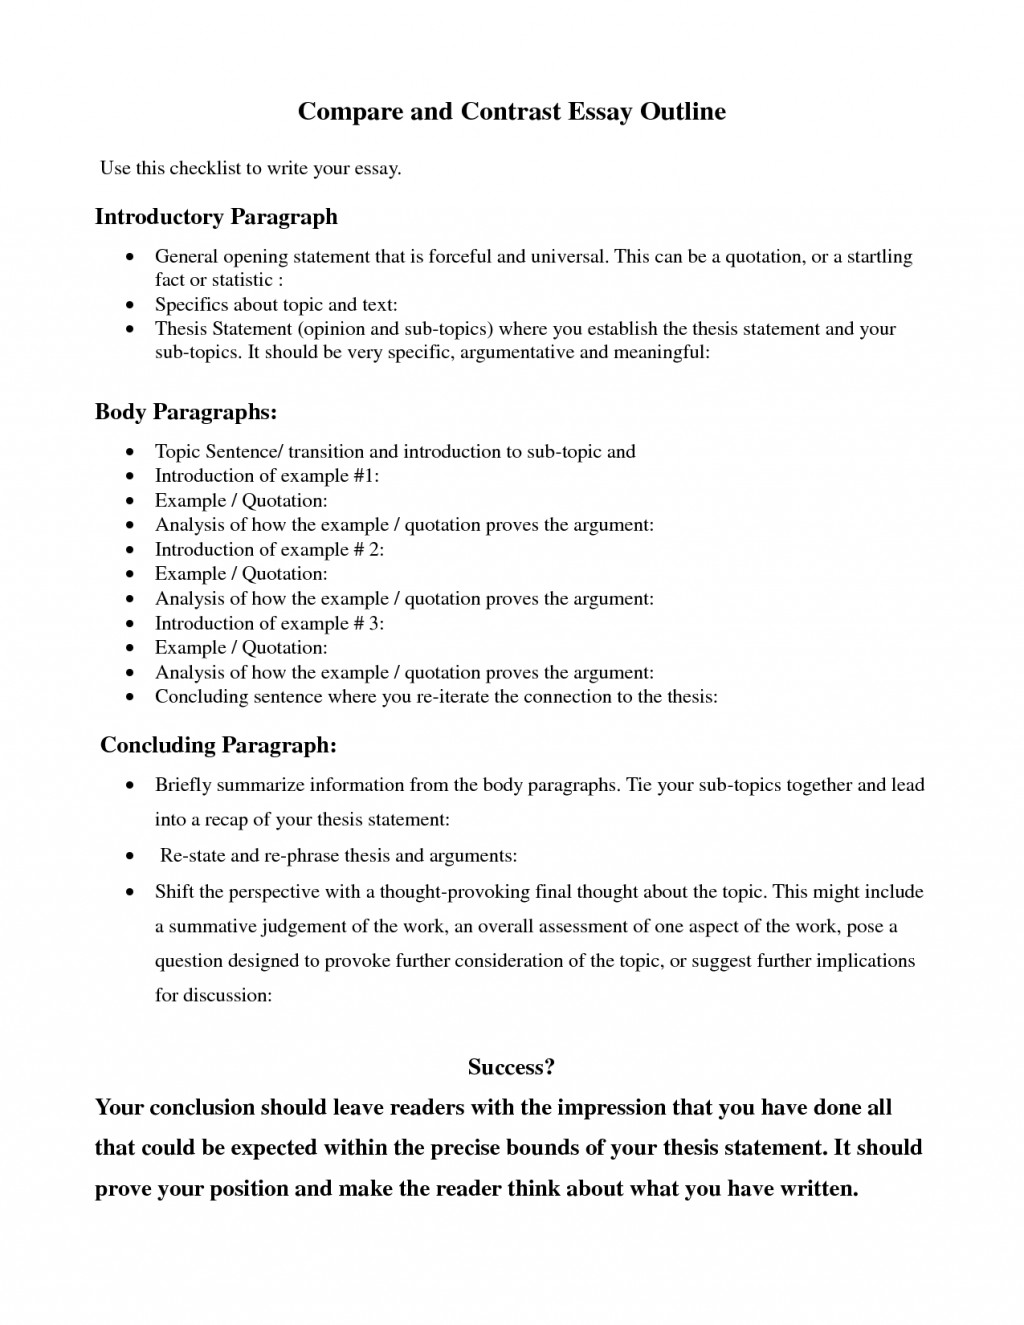 001 Comparing And Contrasting Essay Unique Comparison Contrast Sample Pdf Compare Structure University Topics On Health Large